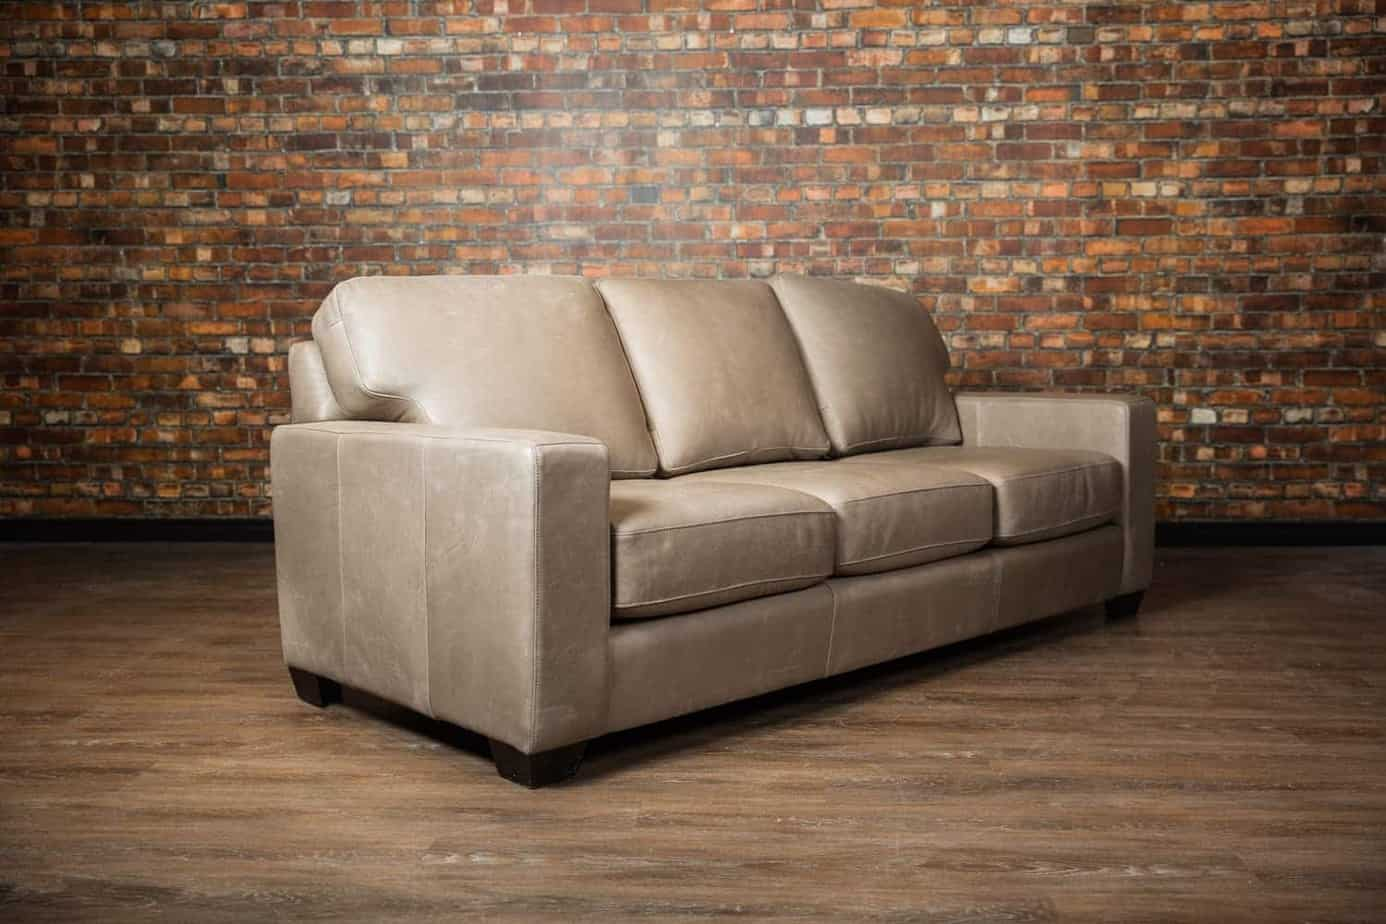 The Mesa Leather Sofa Bed Canada S Boss Leather Sofas